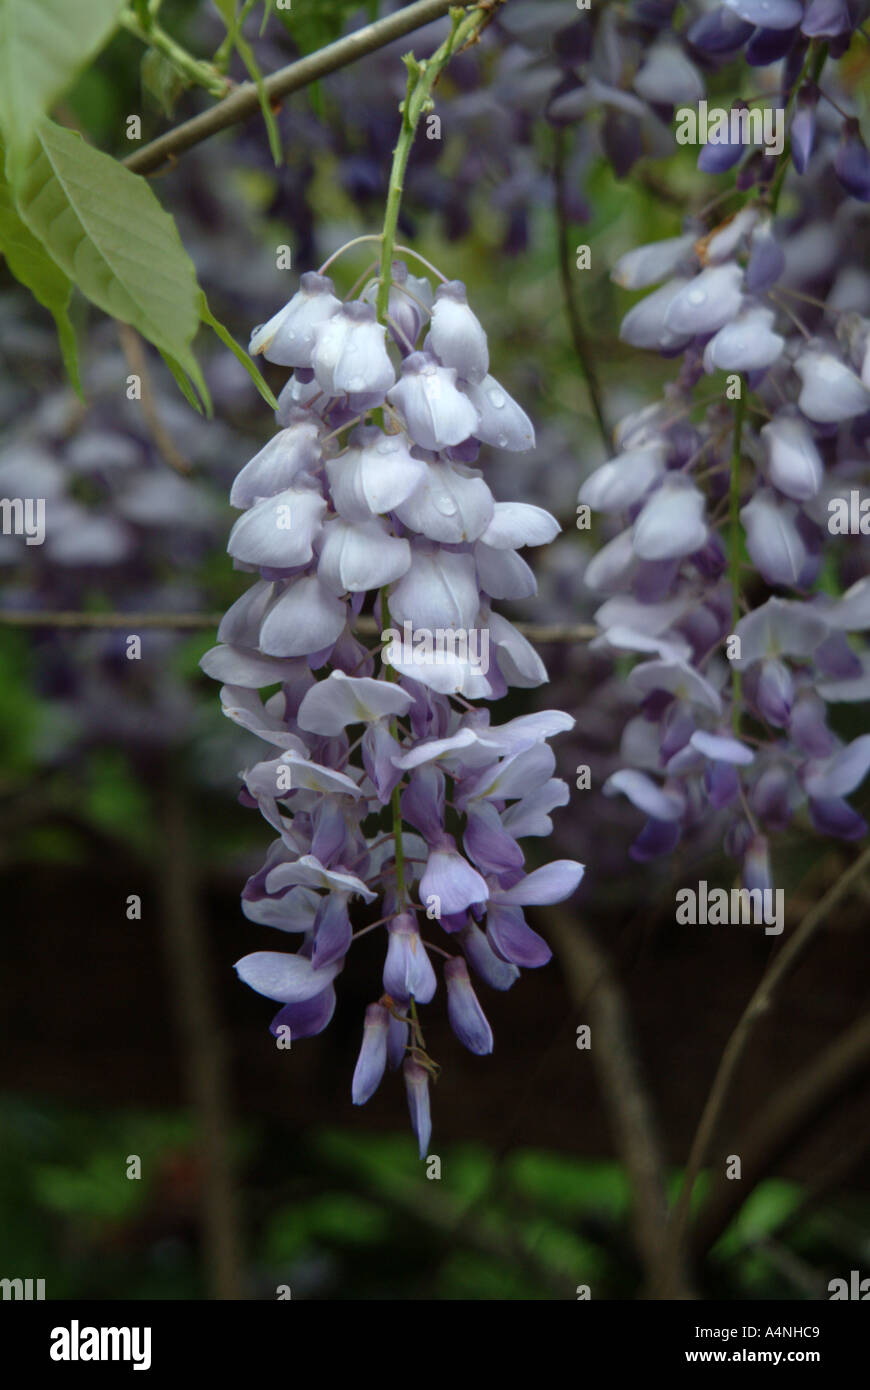 Blue violet flowers of the chinese wisteria plant bloom in sonoma blue violet flowers of the chinese wisteria plant bloom in sonoma county california pr m 101 izmirmasajfo